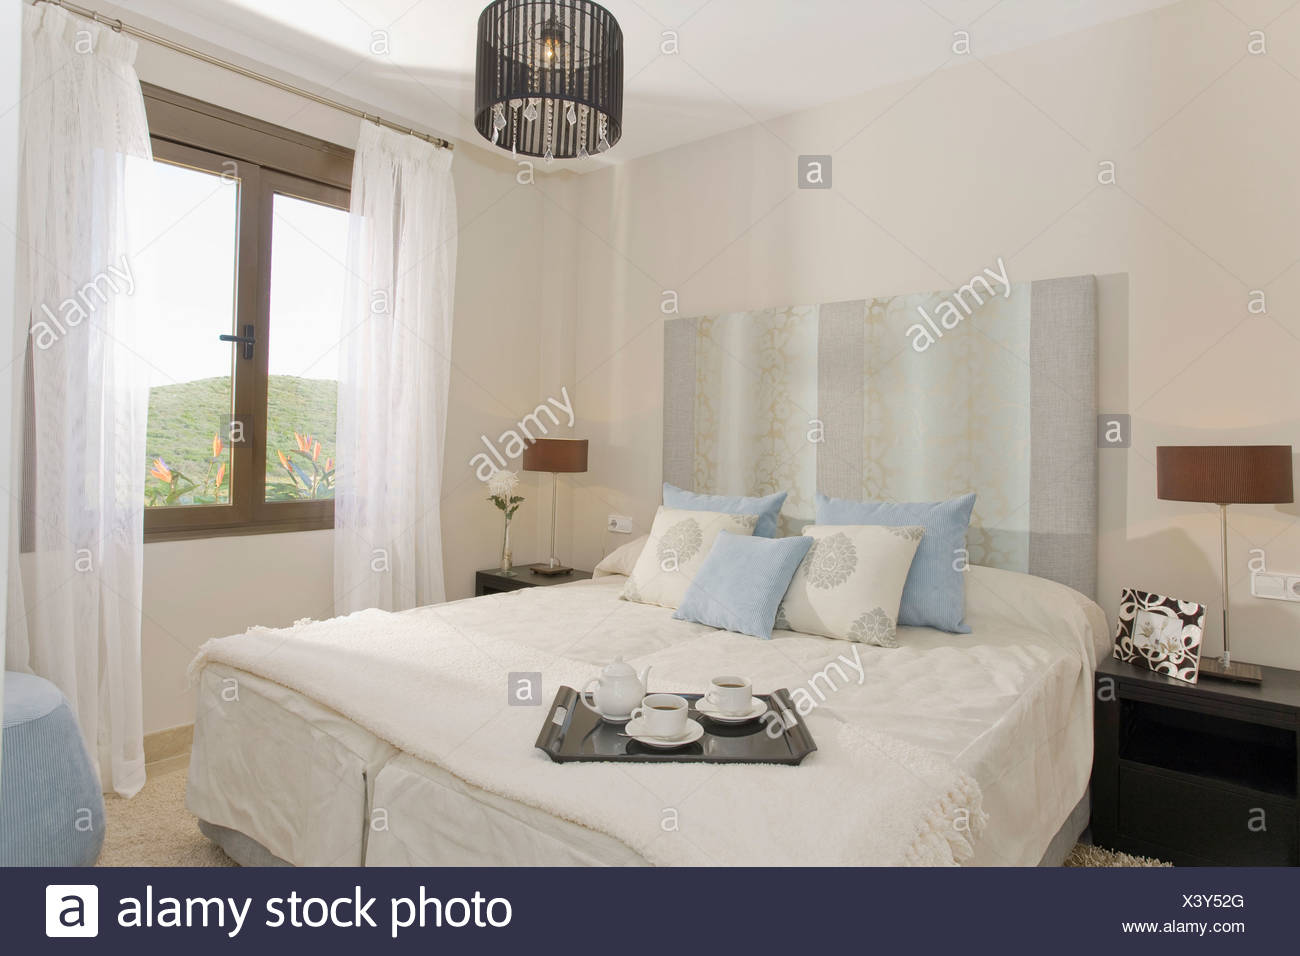 Pale blue striped headboard and pastel blue and cream ...